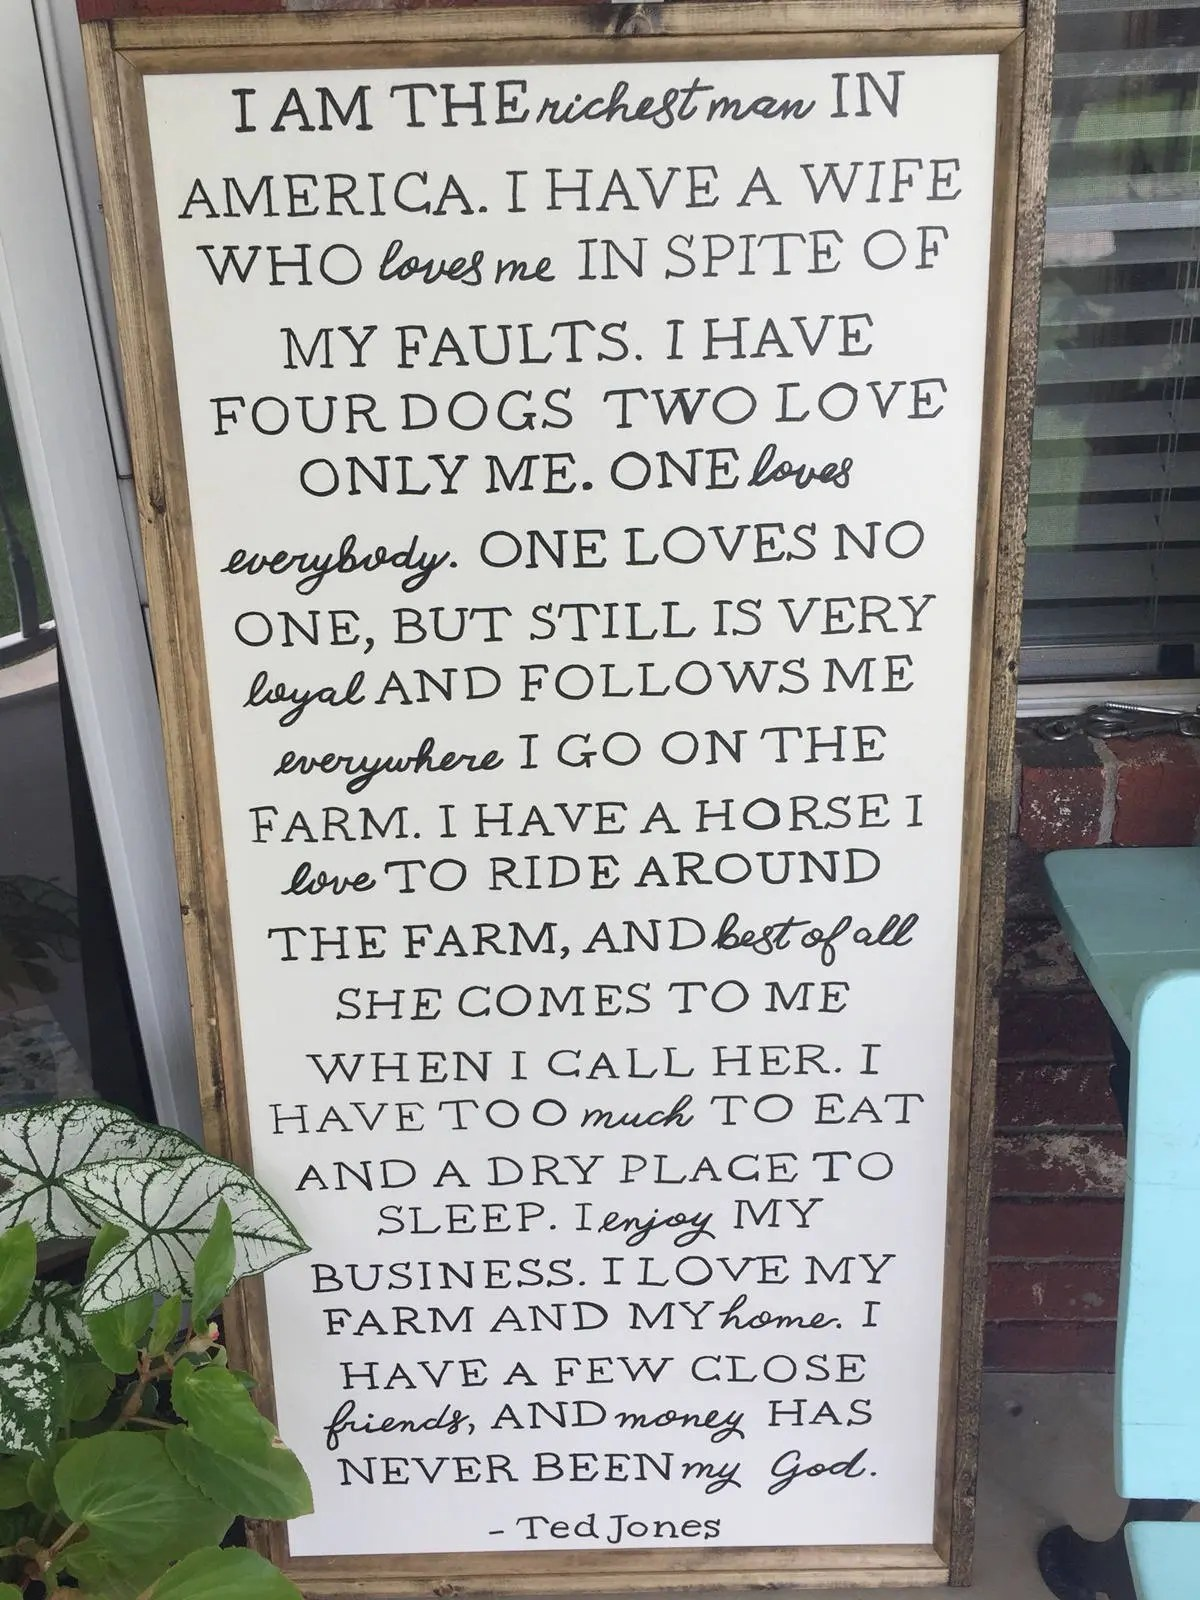 Ted Jones I Am The Richest Man In America Wood Framed Sign